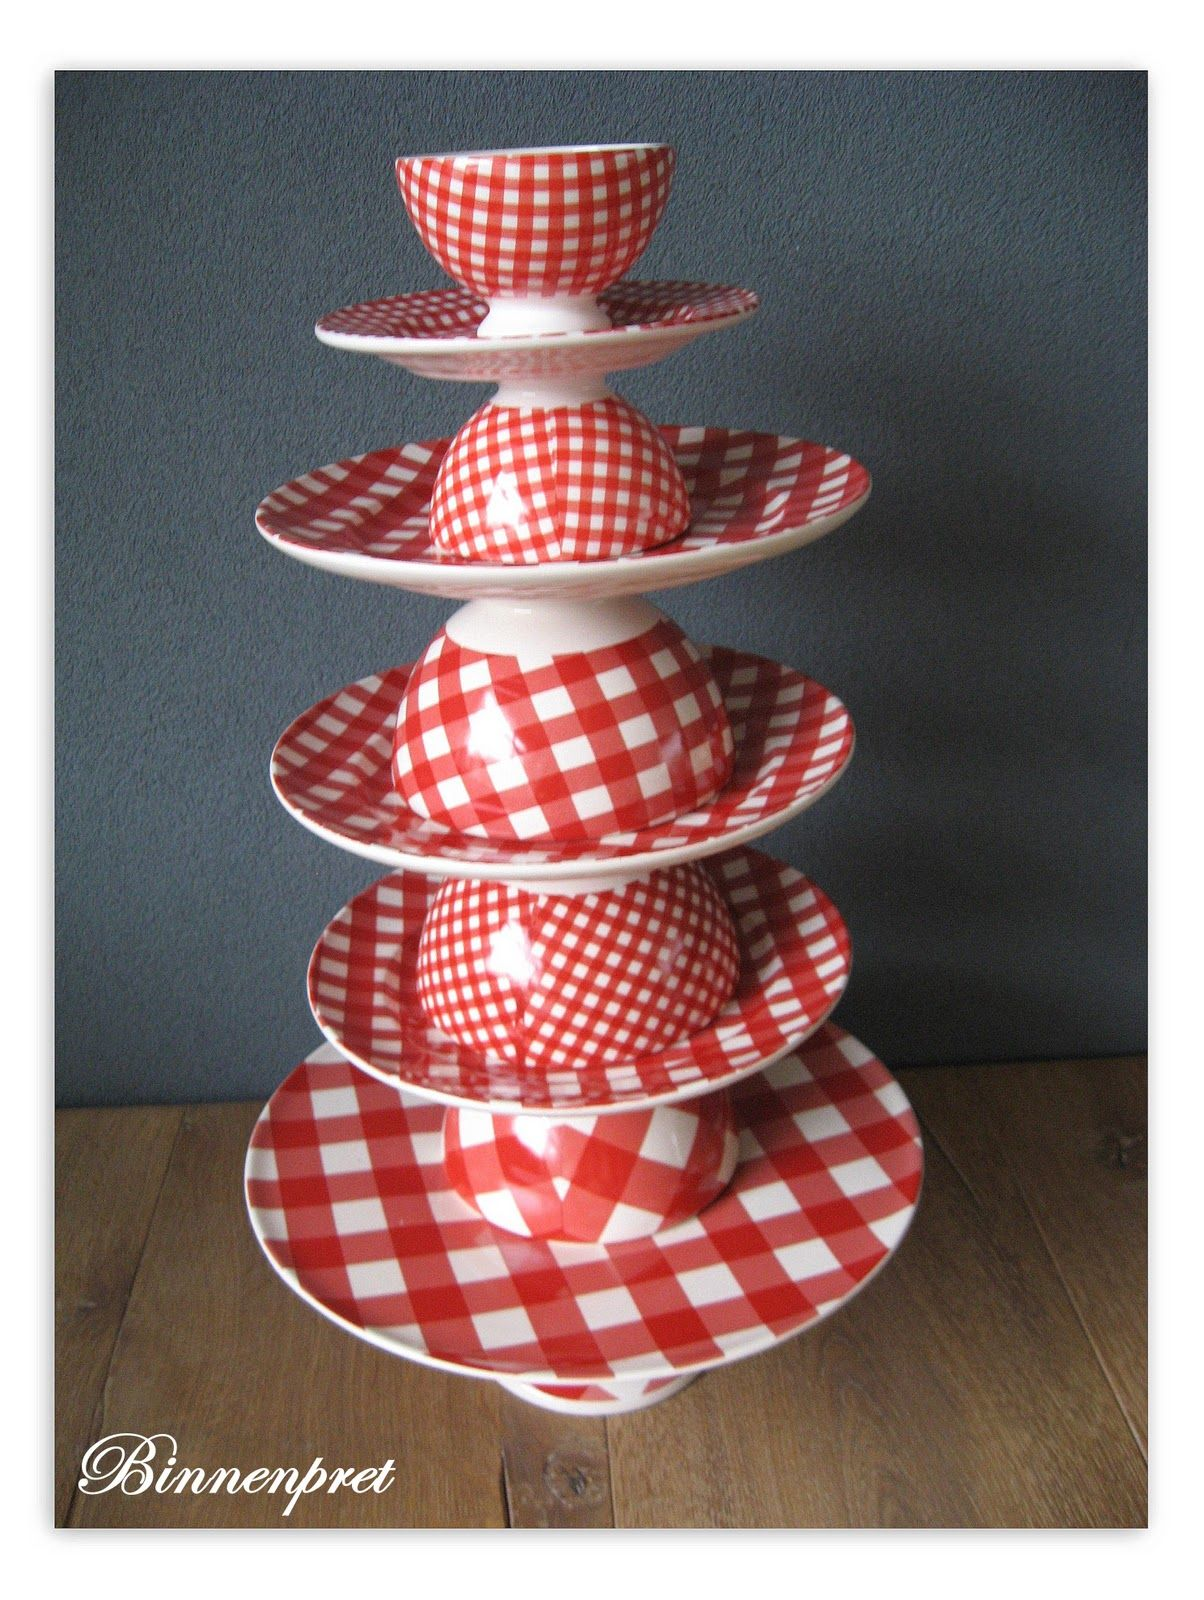 These Great Gingham Dishes Are Designed